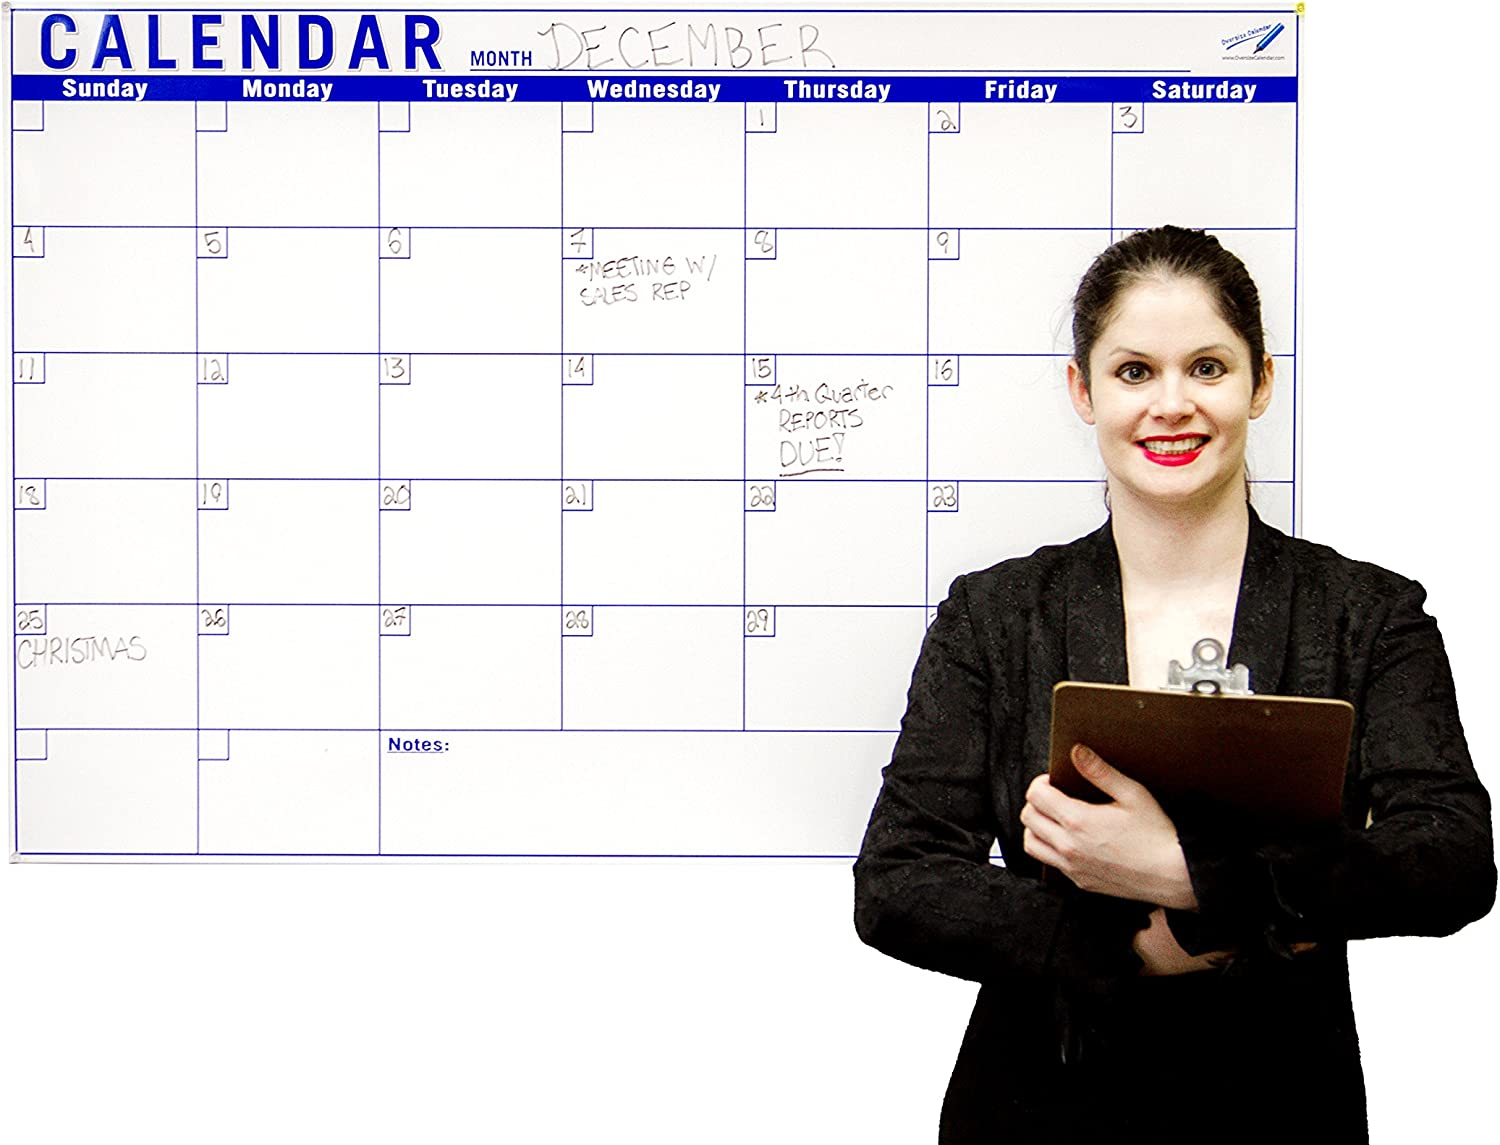 Dry Erase Calendar For Wall - 32 x 48 inch Monthly Large Calendar - Big Dry Erase Wall Calendar - Large Wall Calendar